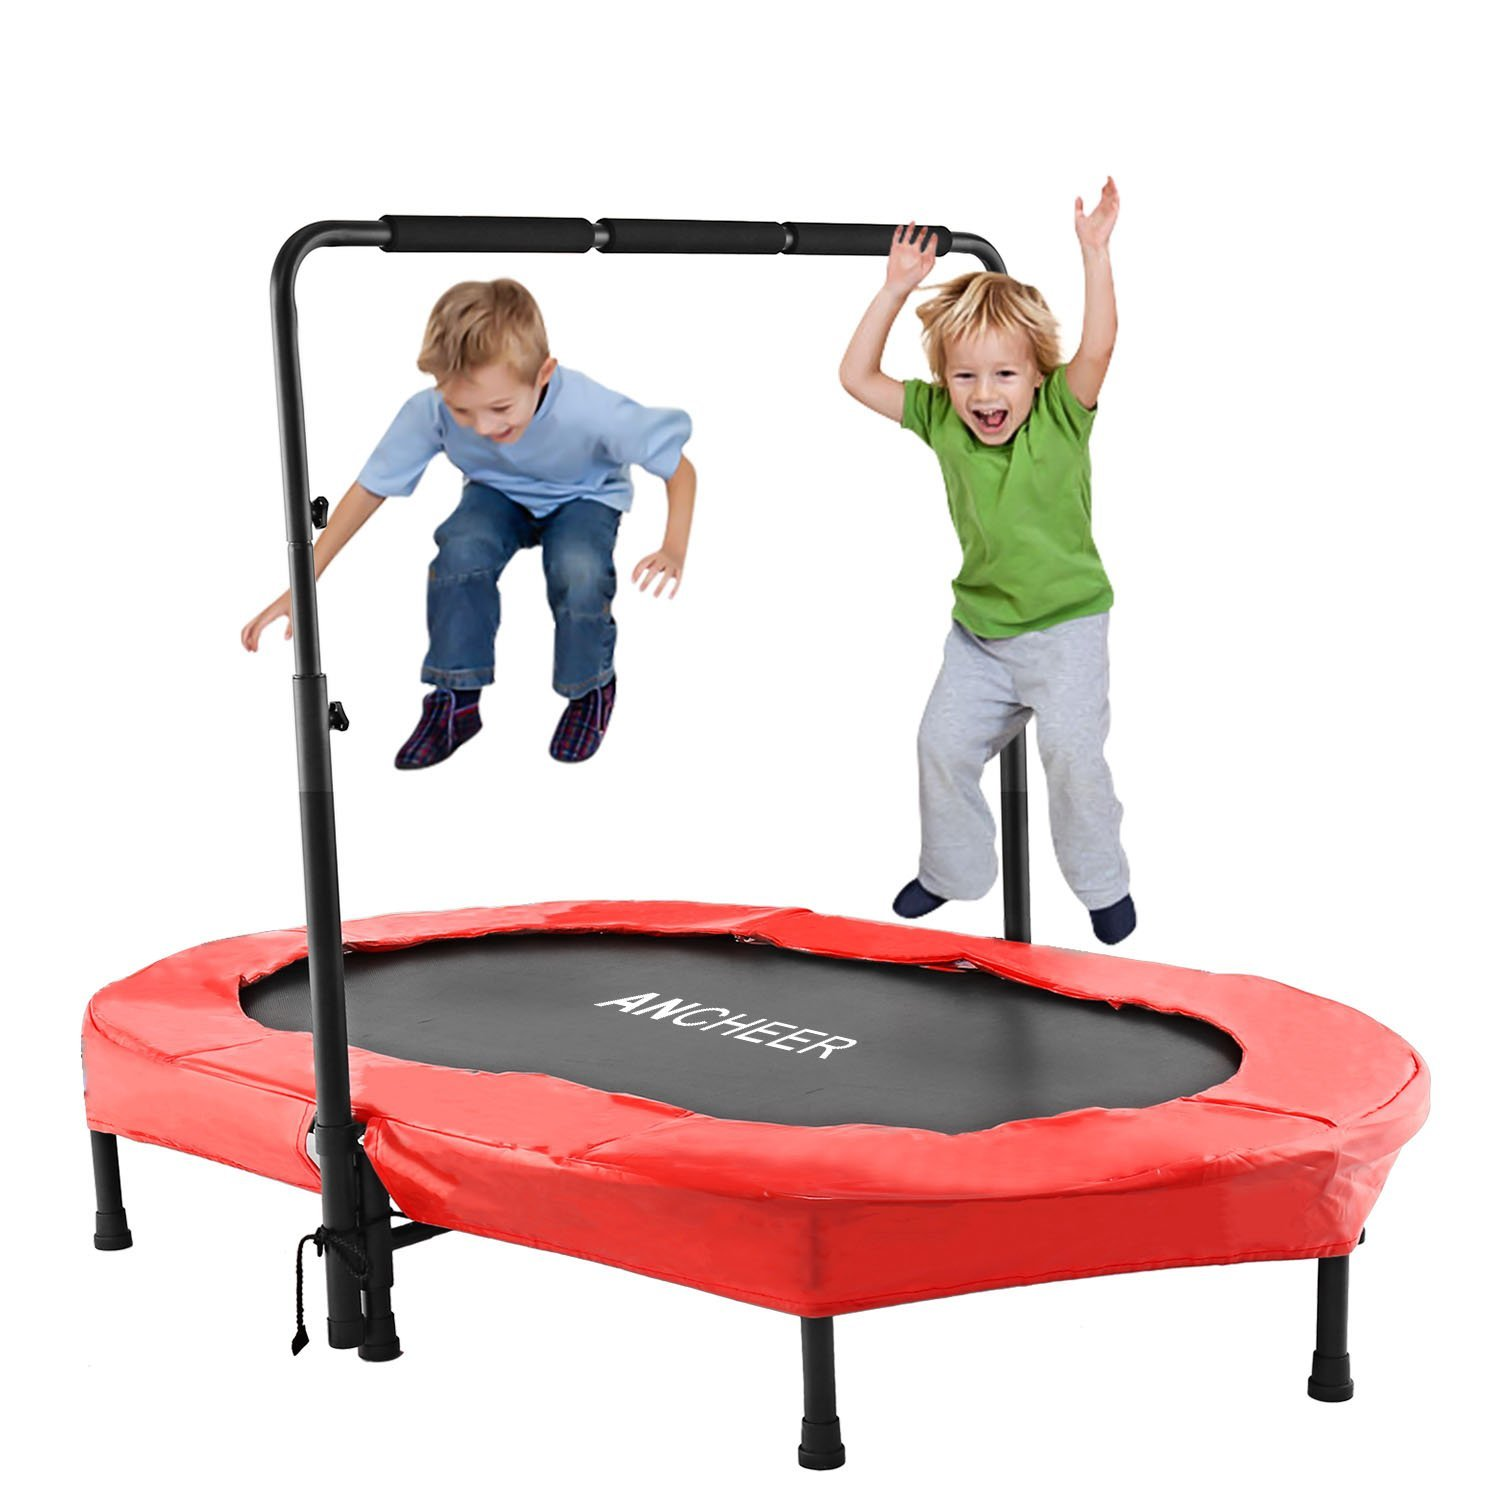 "Ancheer Portable Foldable 36"" Mini Rebounder Trampoline with Handle – Available in 2 Colors"